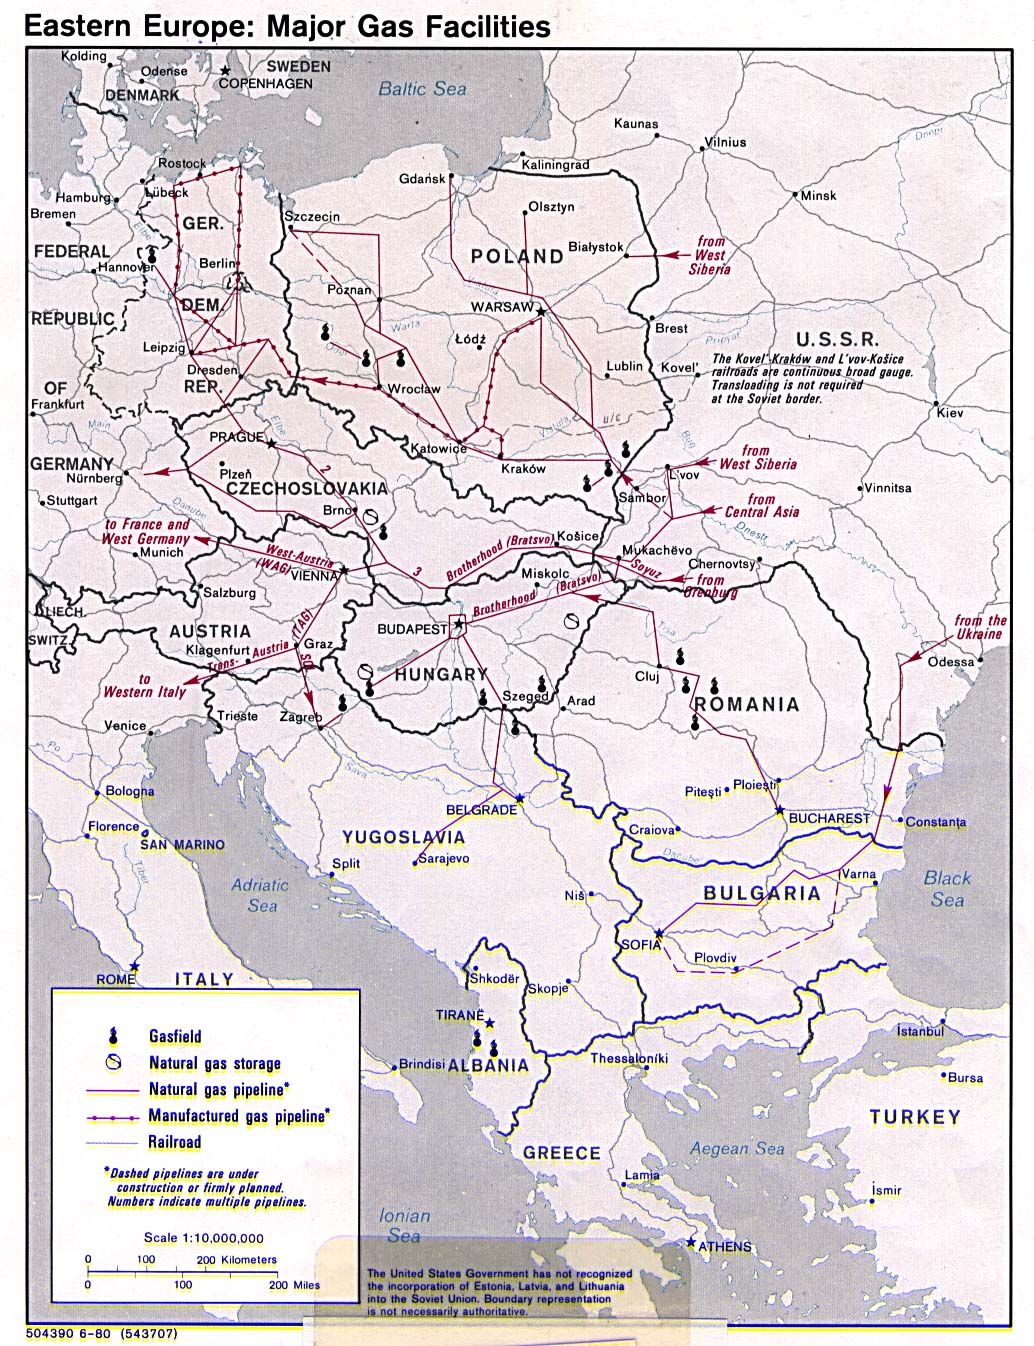 Eastern Europe major gas facilities 1980